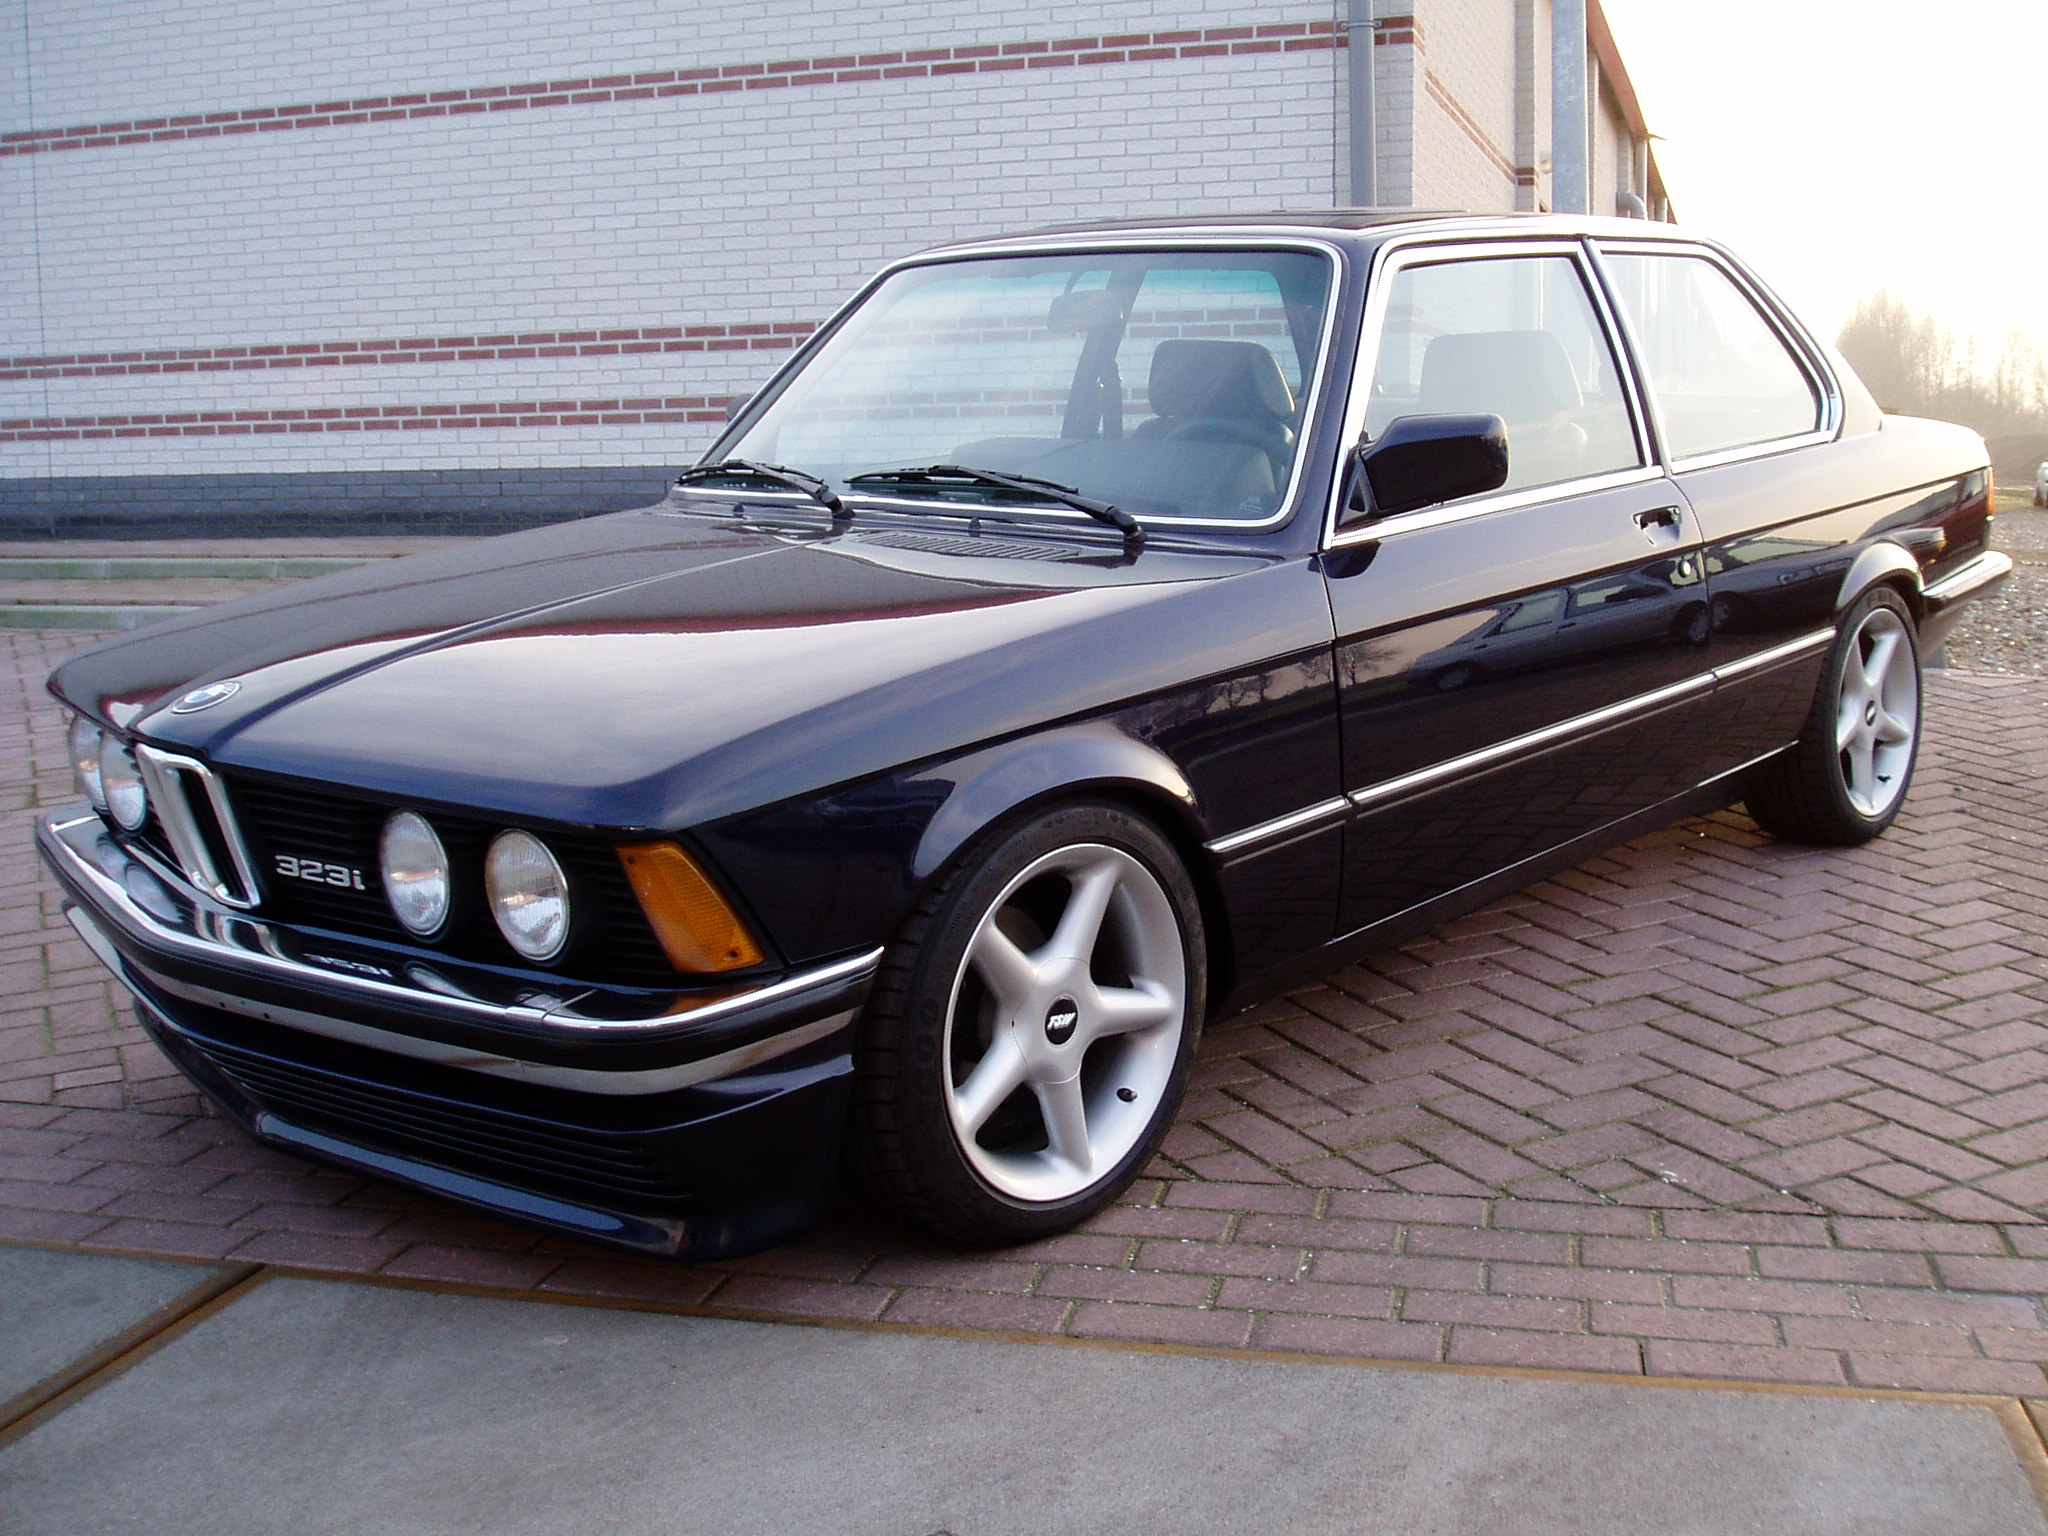 BMW 323I E21 submited images.